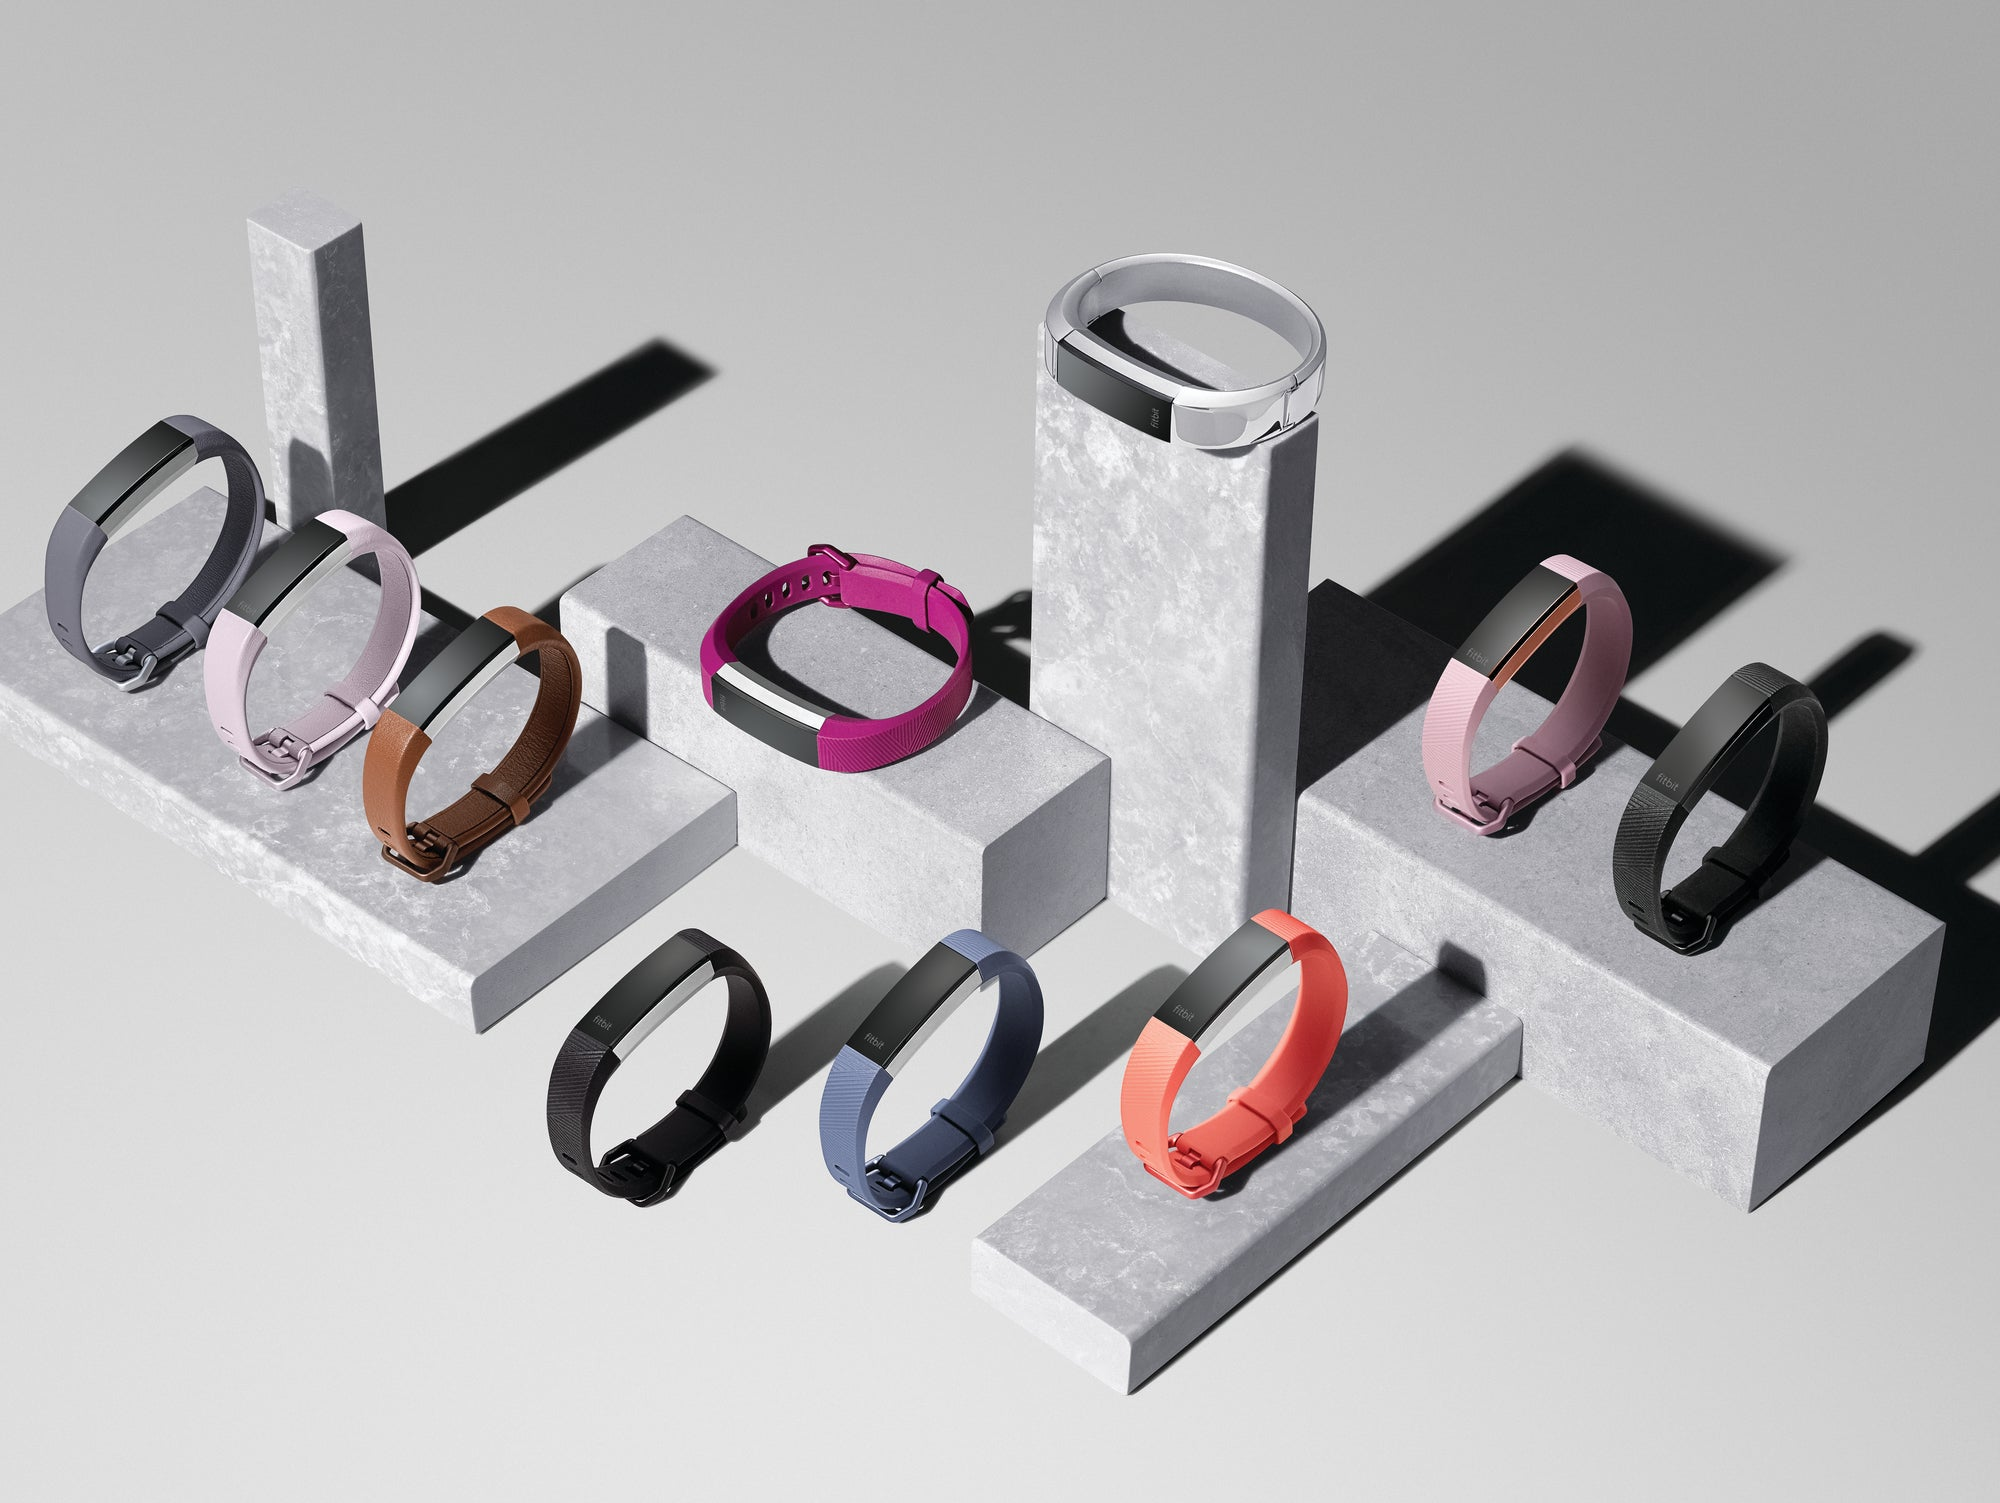 Fitbit Finally Made A Good Looking Heart Rate Tracker | Gizmodo